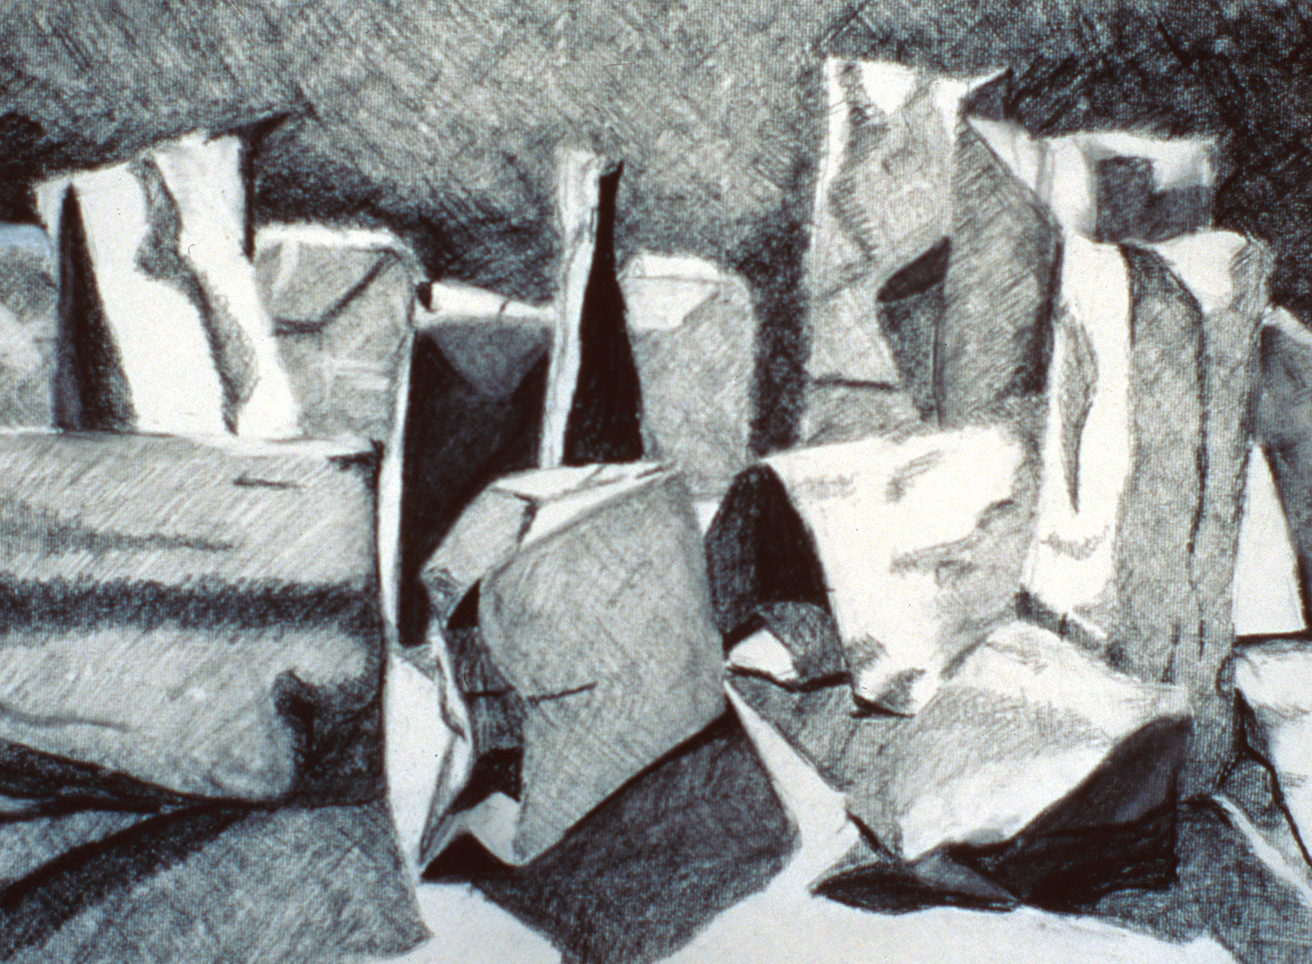 Surface Geometry through Value, Charcoal, Introduction to Drawing